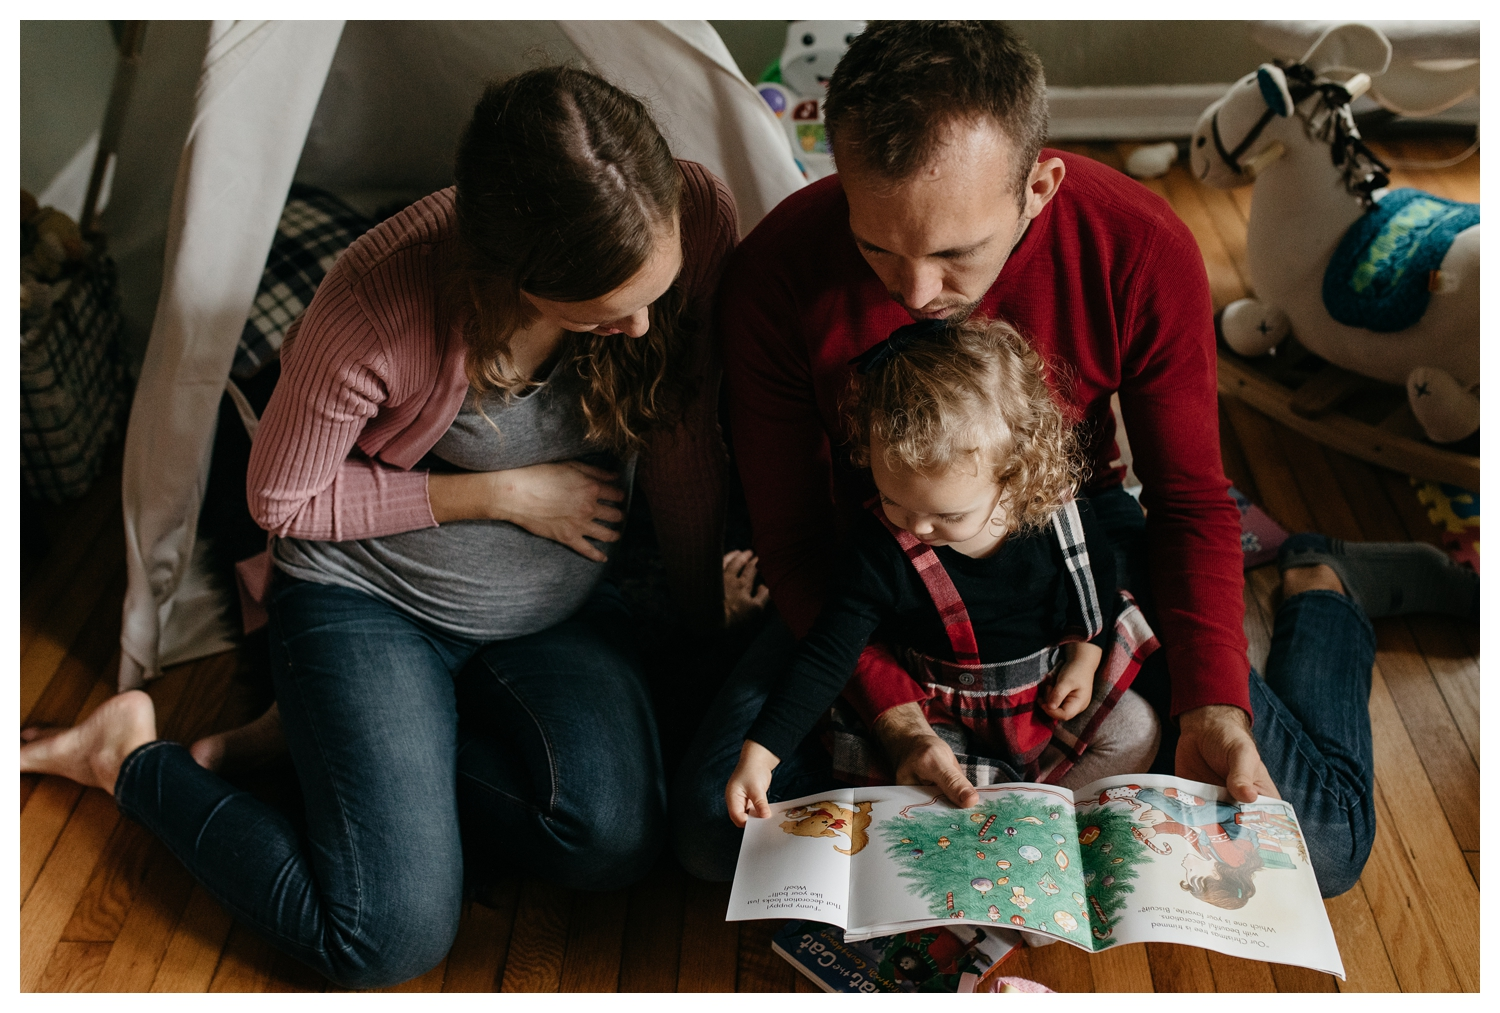 Toddler Reading Book with Parents.jpg